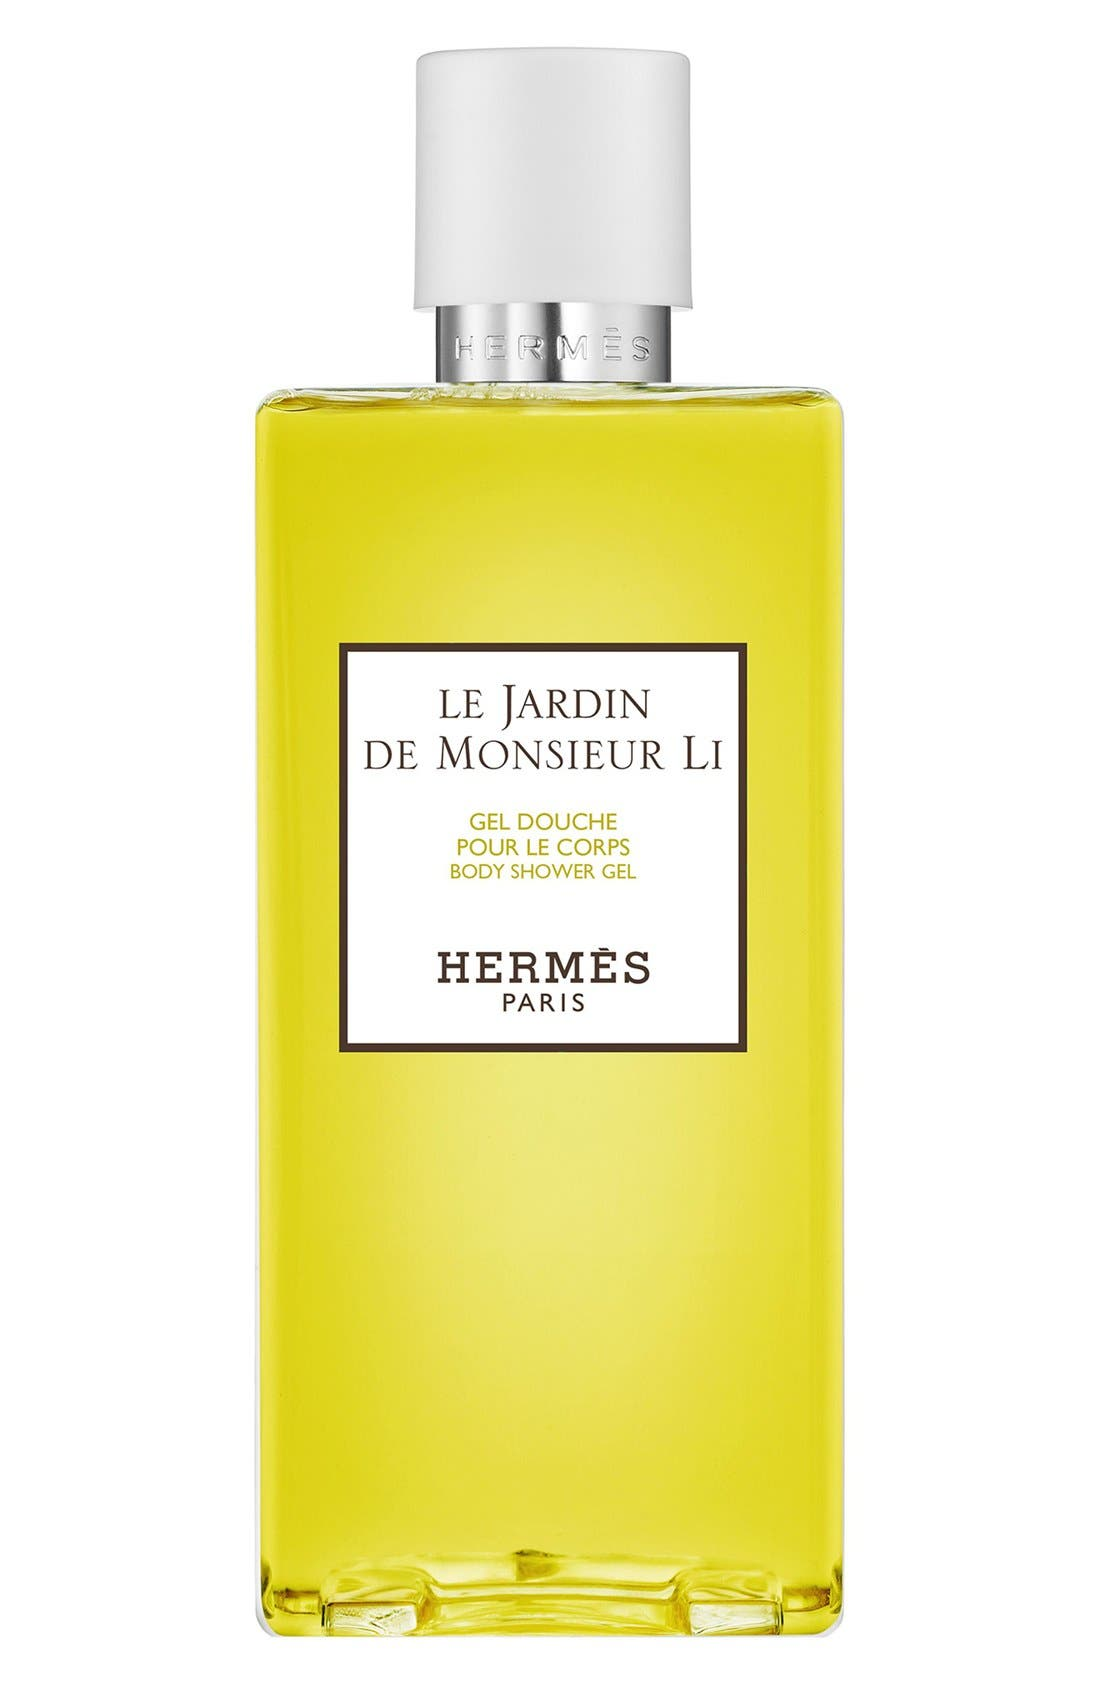 Hermès Le Jardin de Monsieur Li - Shower gel